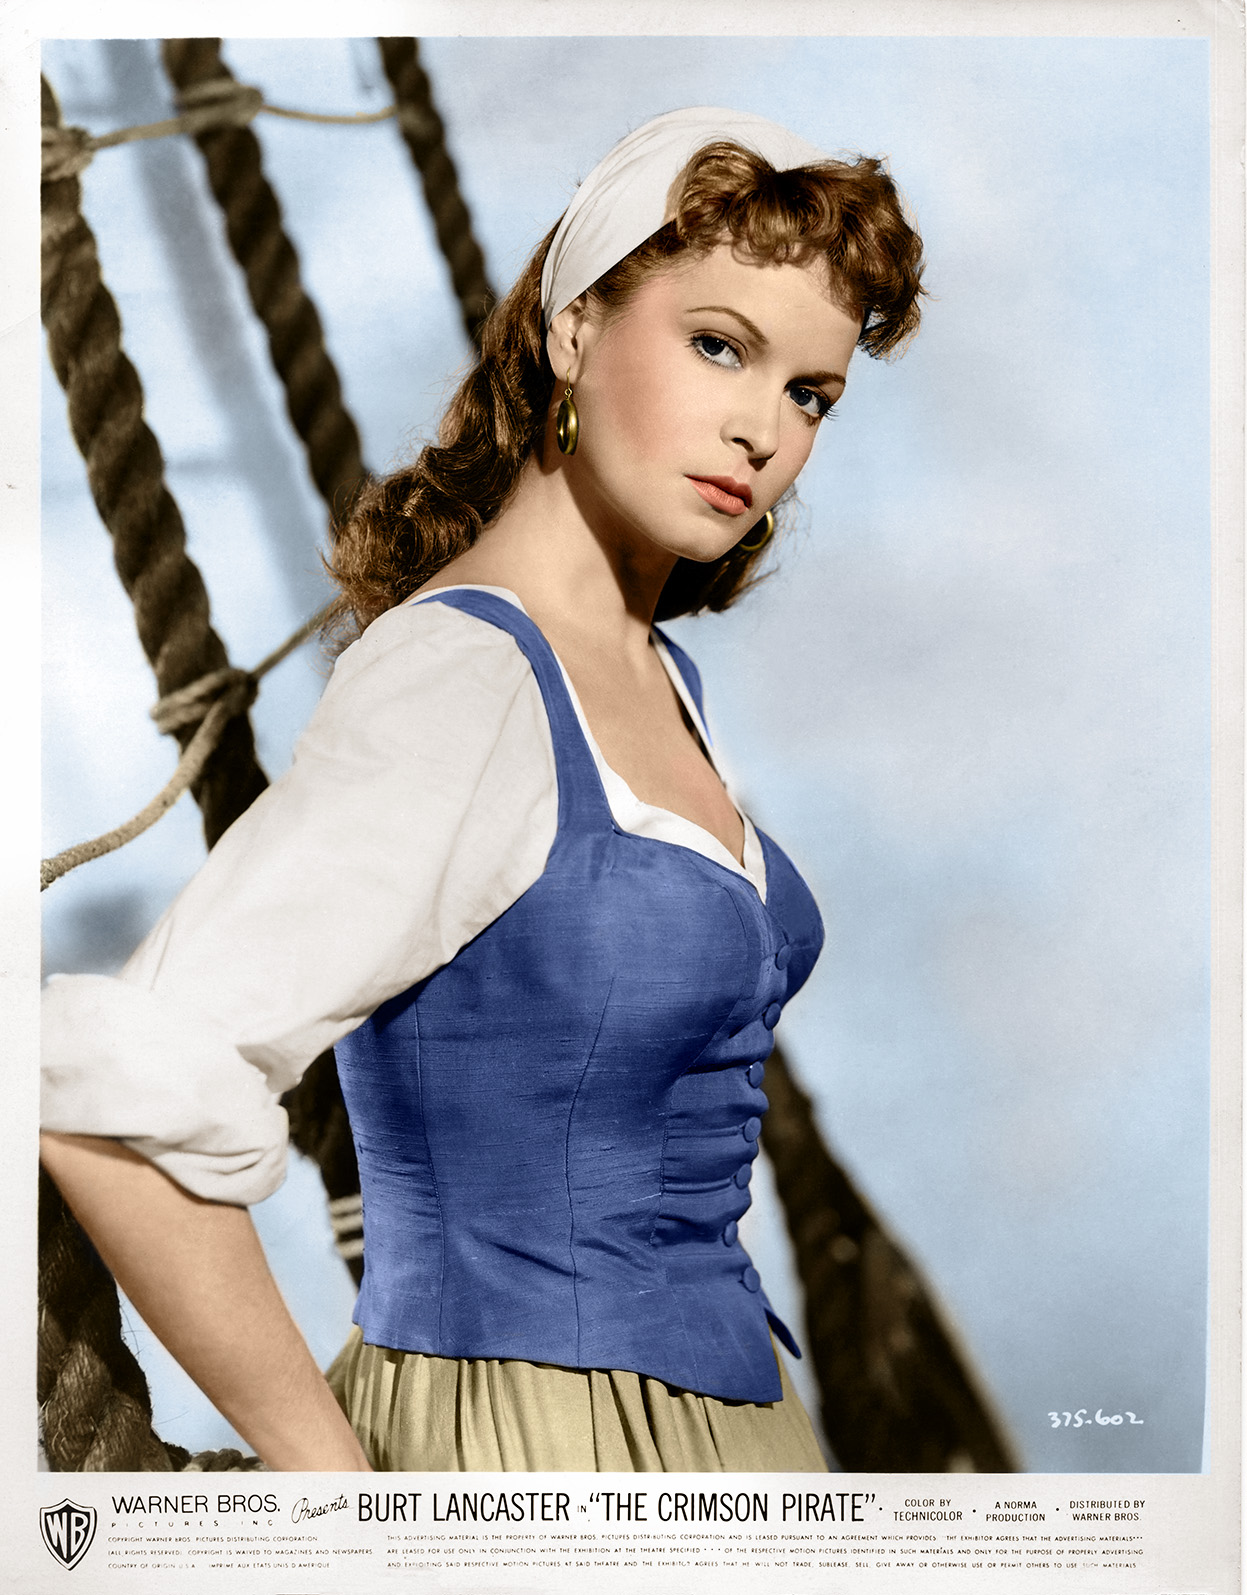 Lobby card from The Crimson Pirate, hand coloured using Photoshop CC 2020